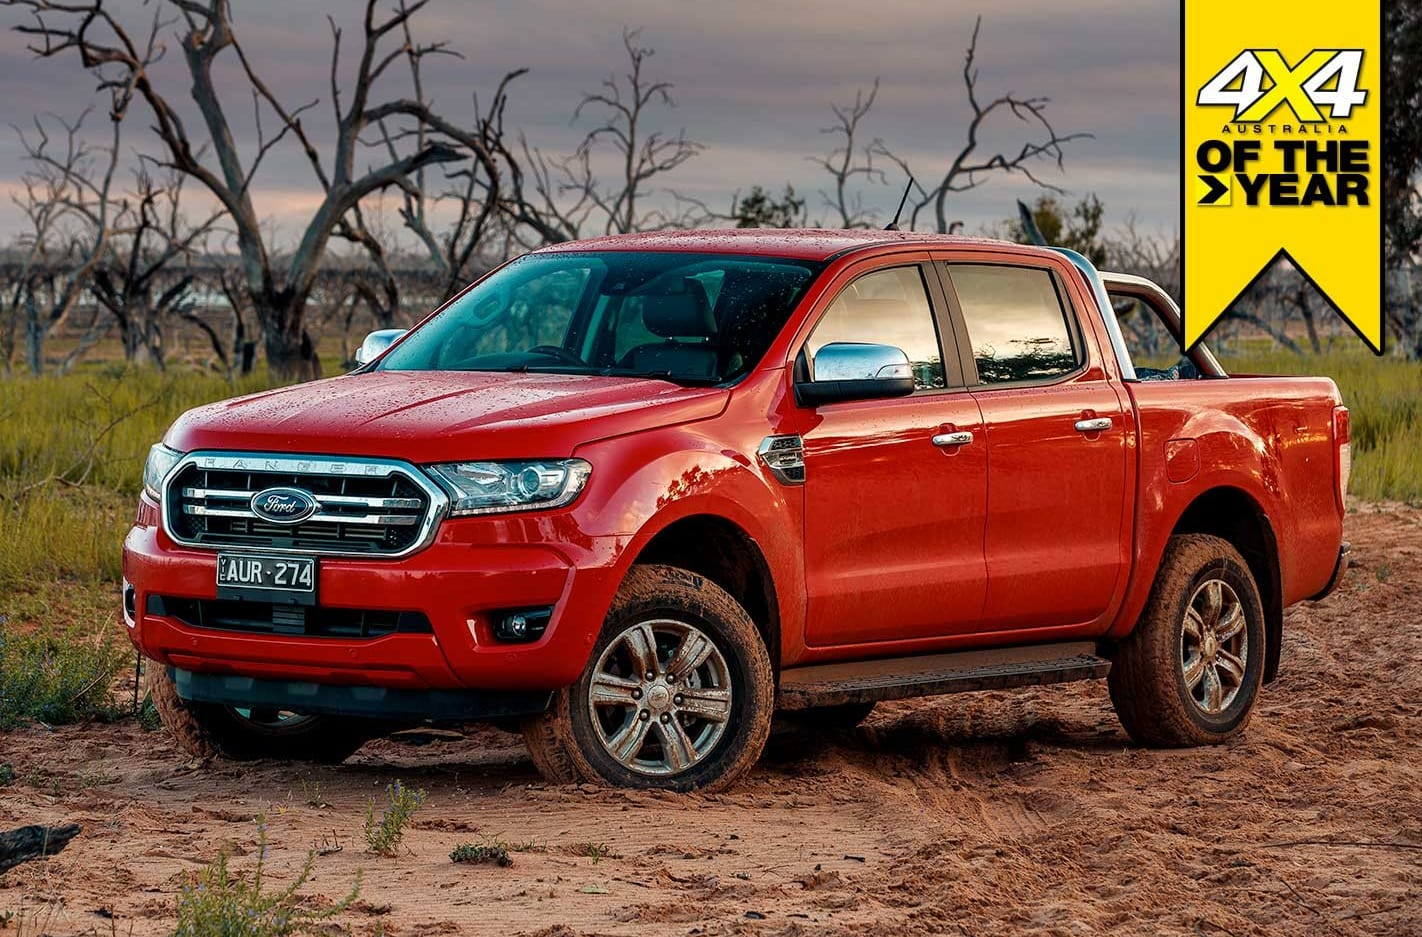 Ford Ranger XLT 2019 4x4 of the Year contender